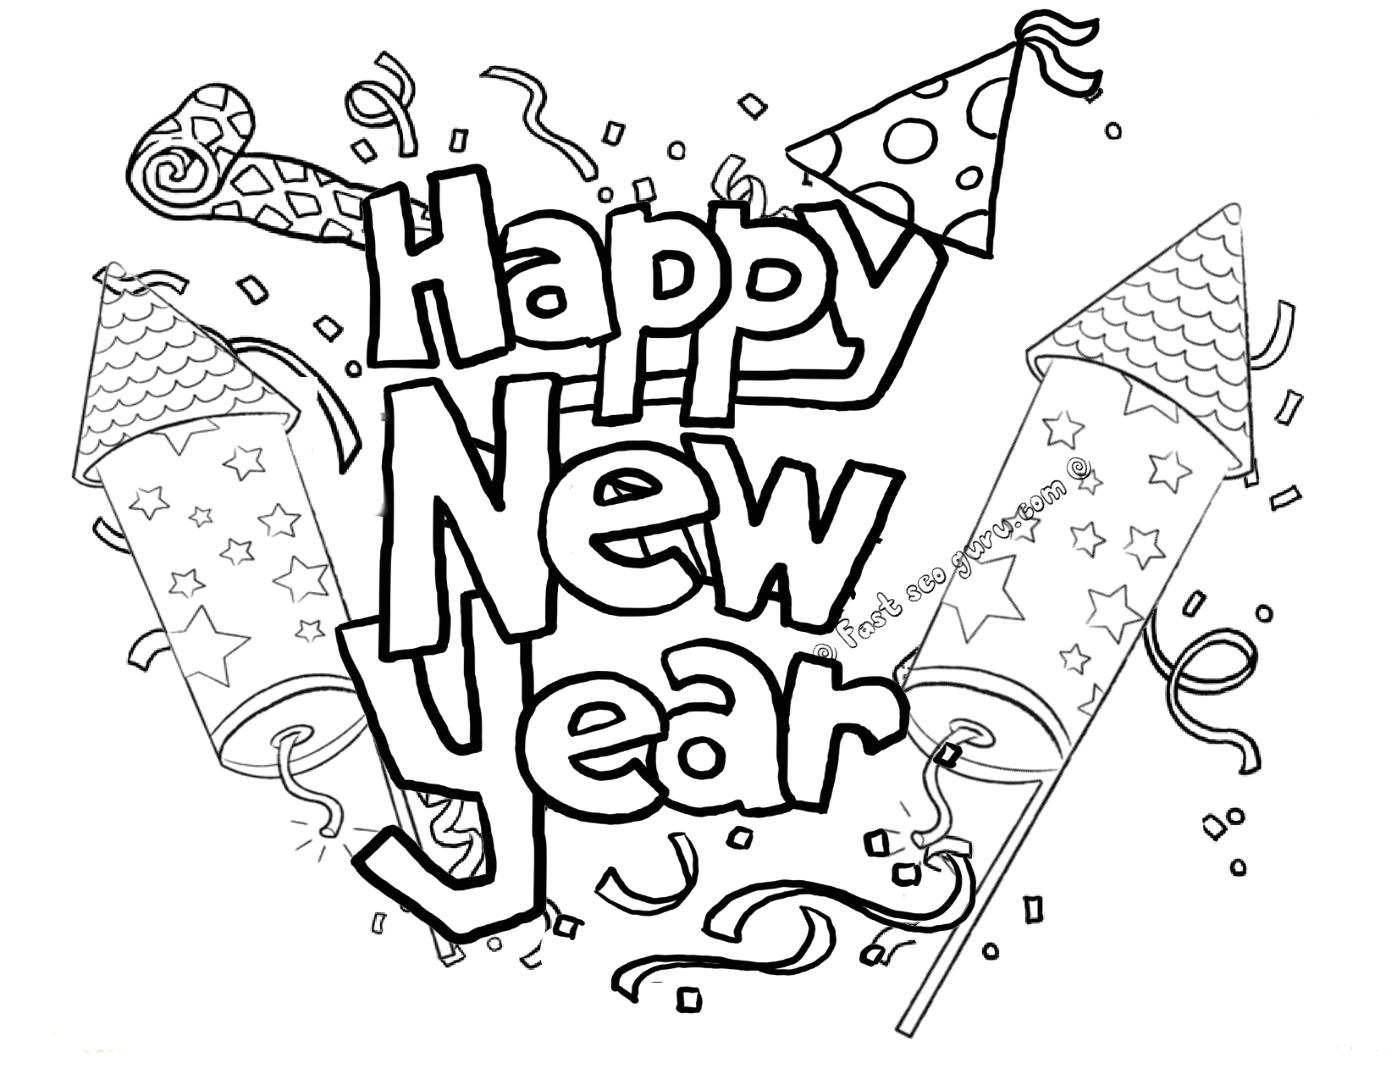 Happy New Year Coloring Pages to Print Happy New Year Coloring Pages to and Print for Free